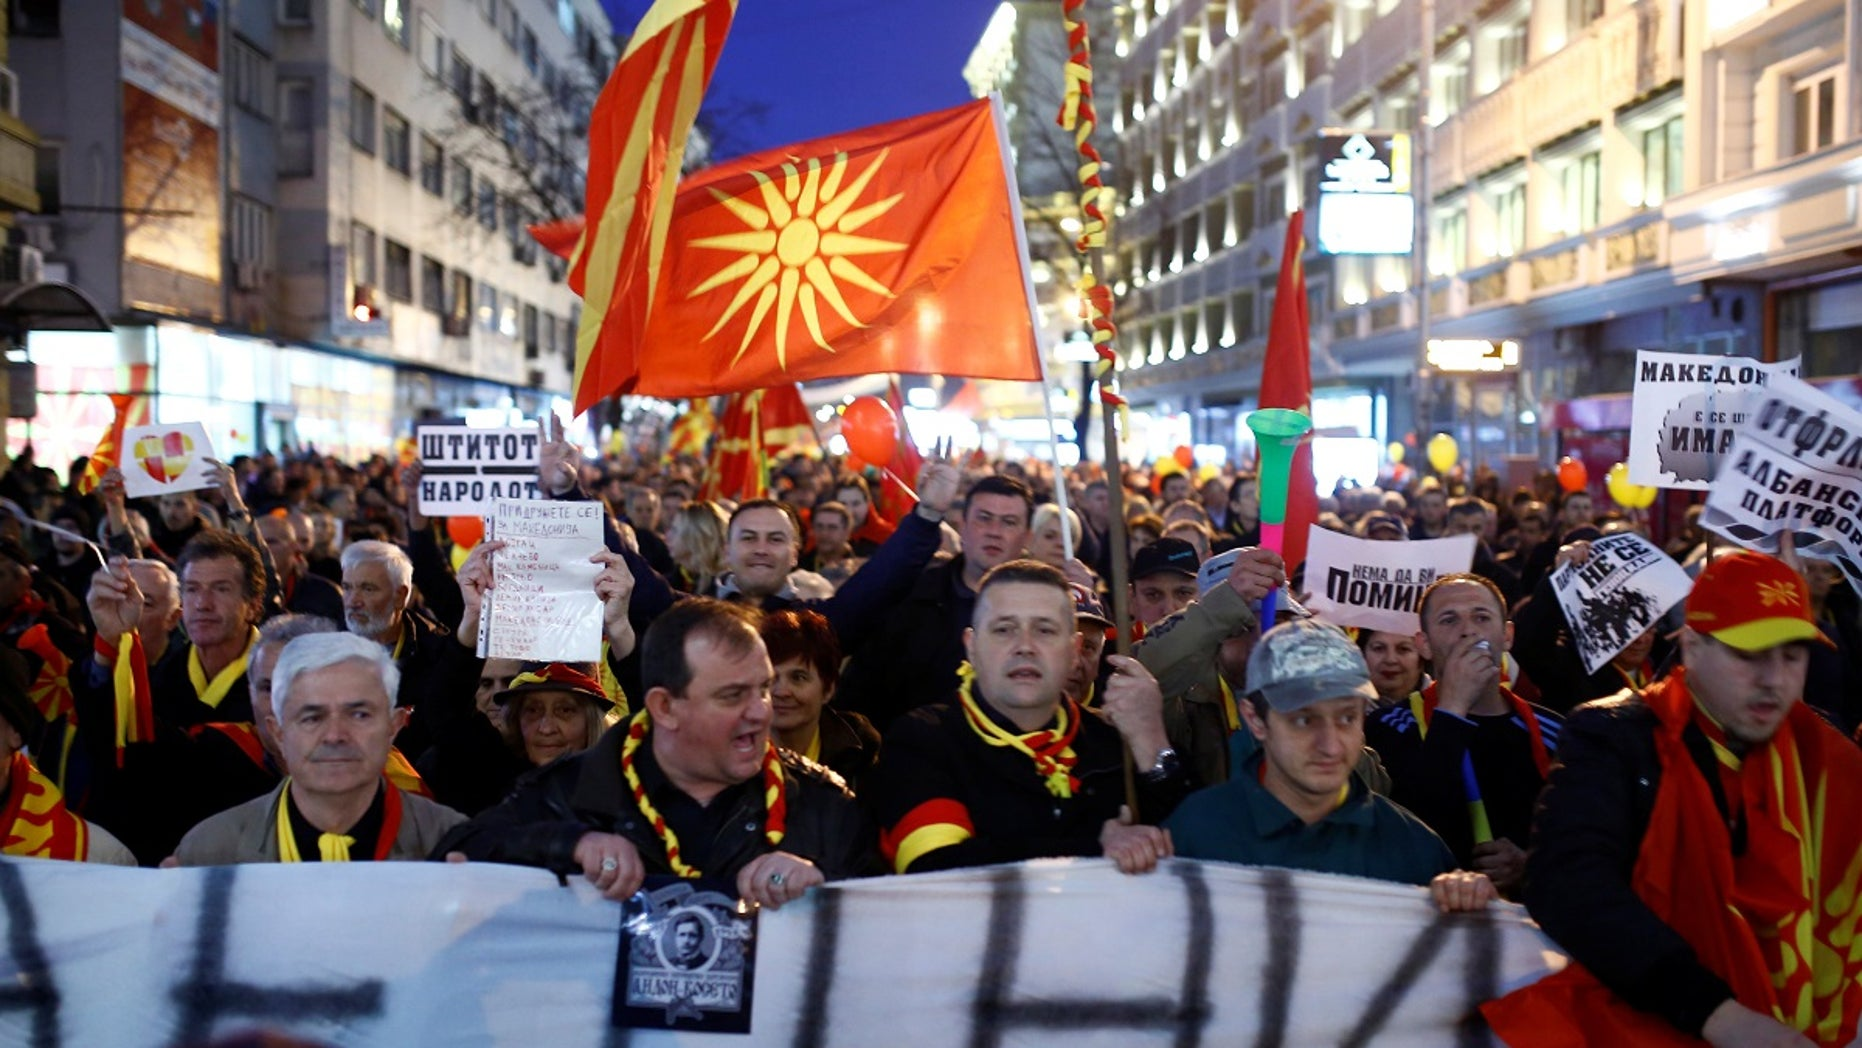 Protesters demonstrate against an agreement that would ensure the wider official use of the Albanian language, in Skopje, Macedonia March 9, 2017.